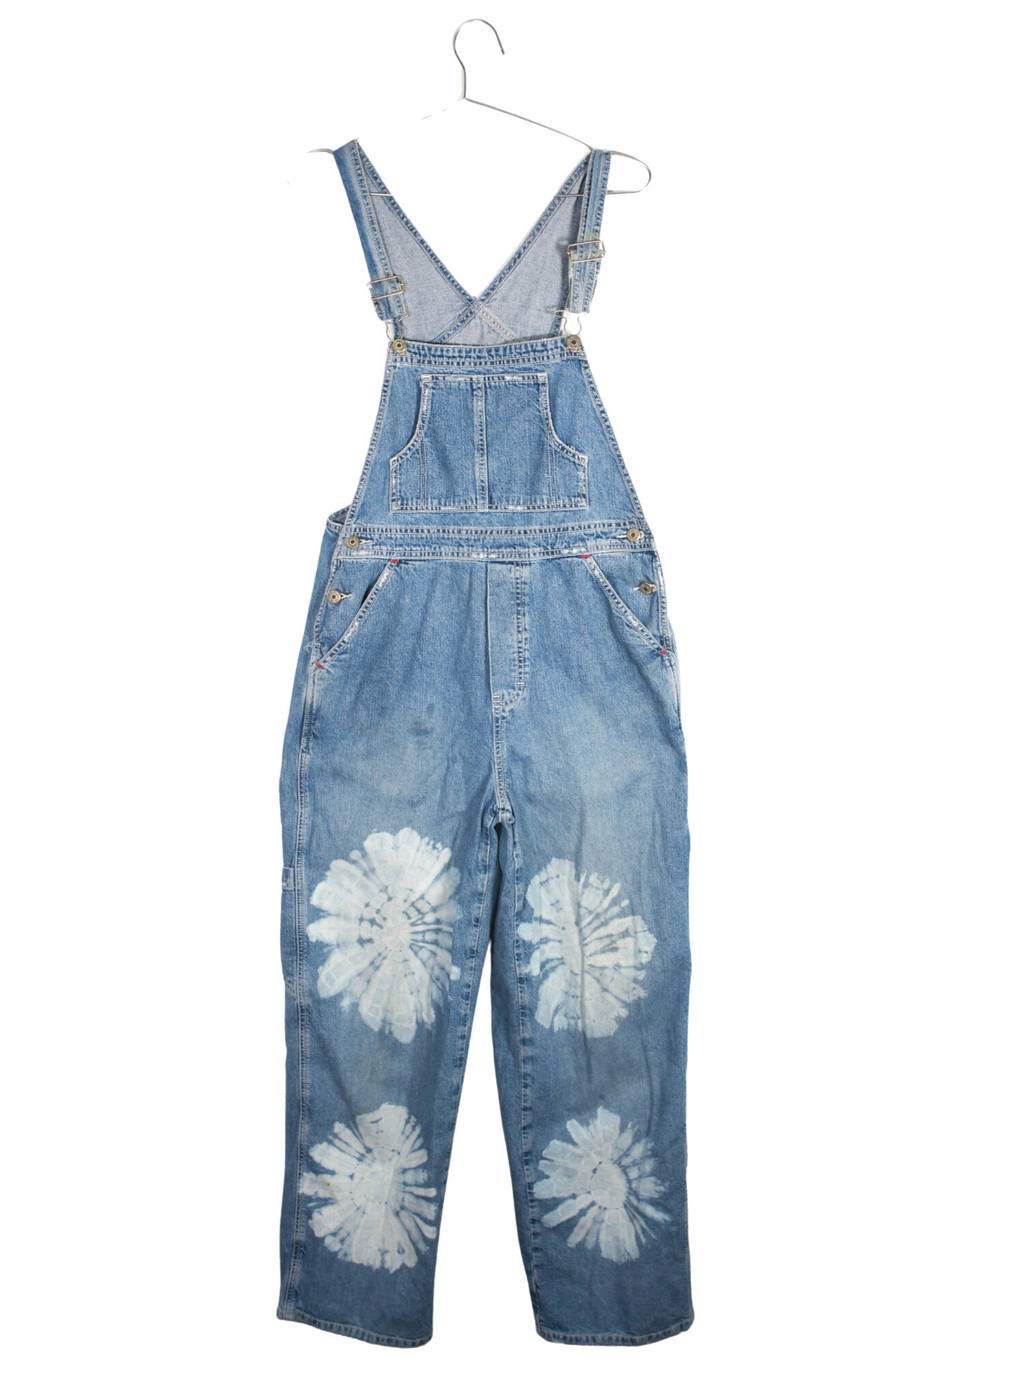 Vintage Hand Painted Denim Overalls